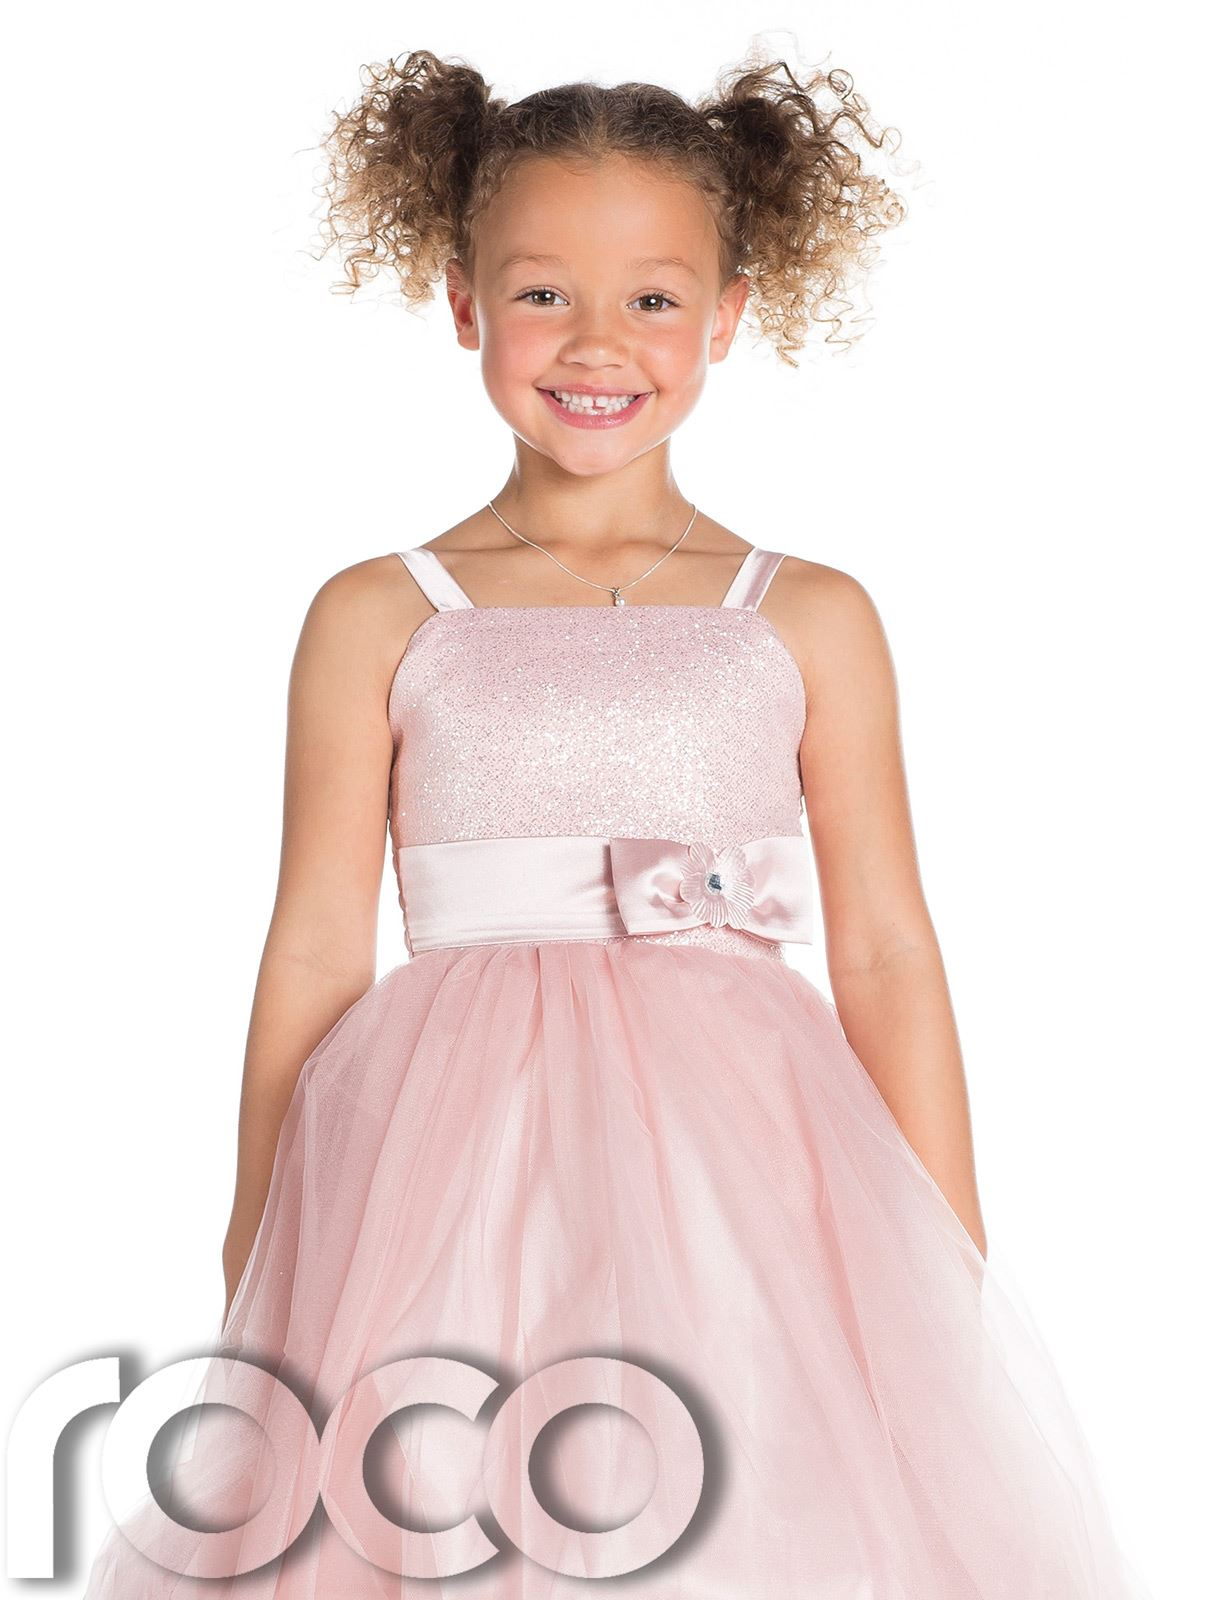 Flossy Girls Bridesmaid Bow Detail Girls Party Prom Girls Party Dresses Uk Girls Party Dresses 7 16 wedding dress Girls Party Dresses